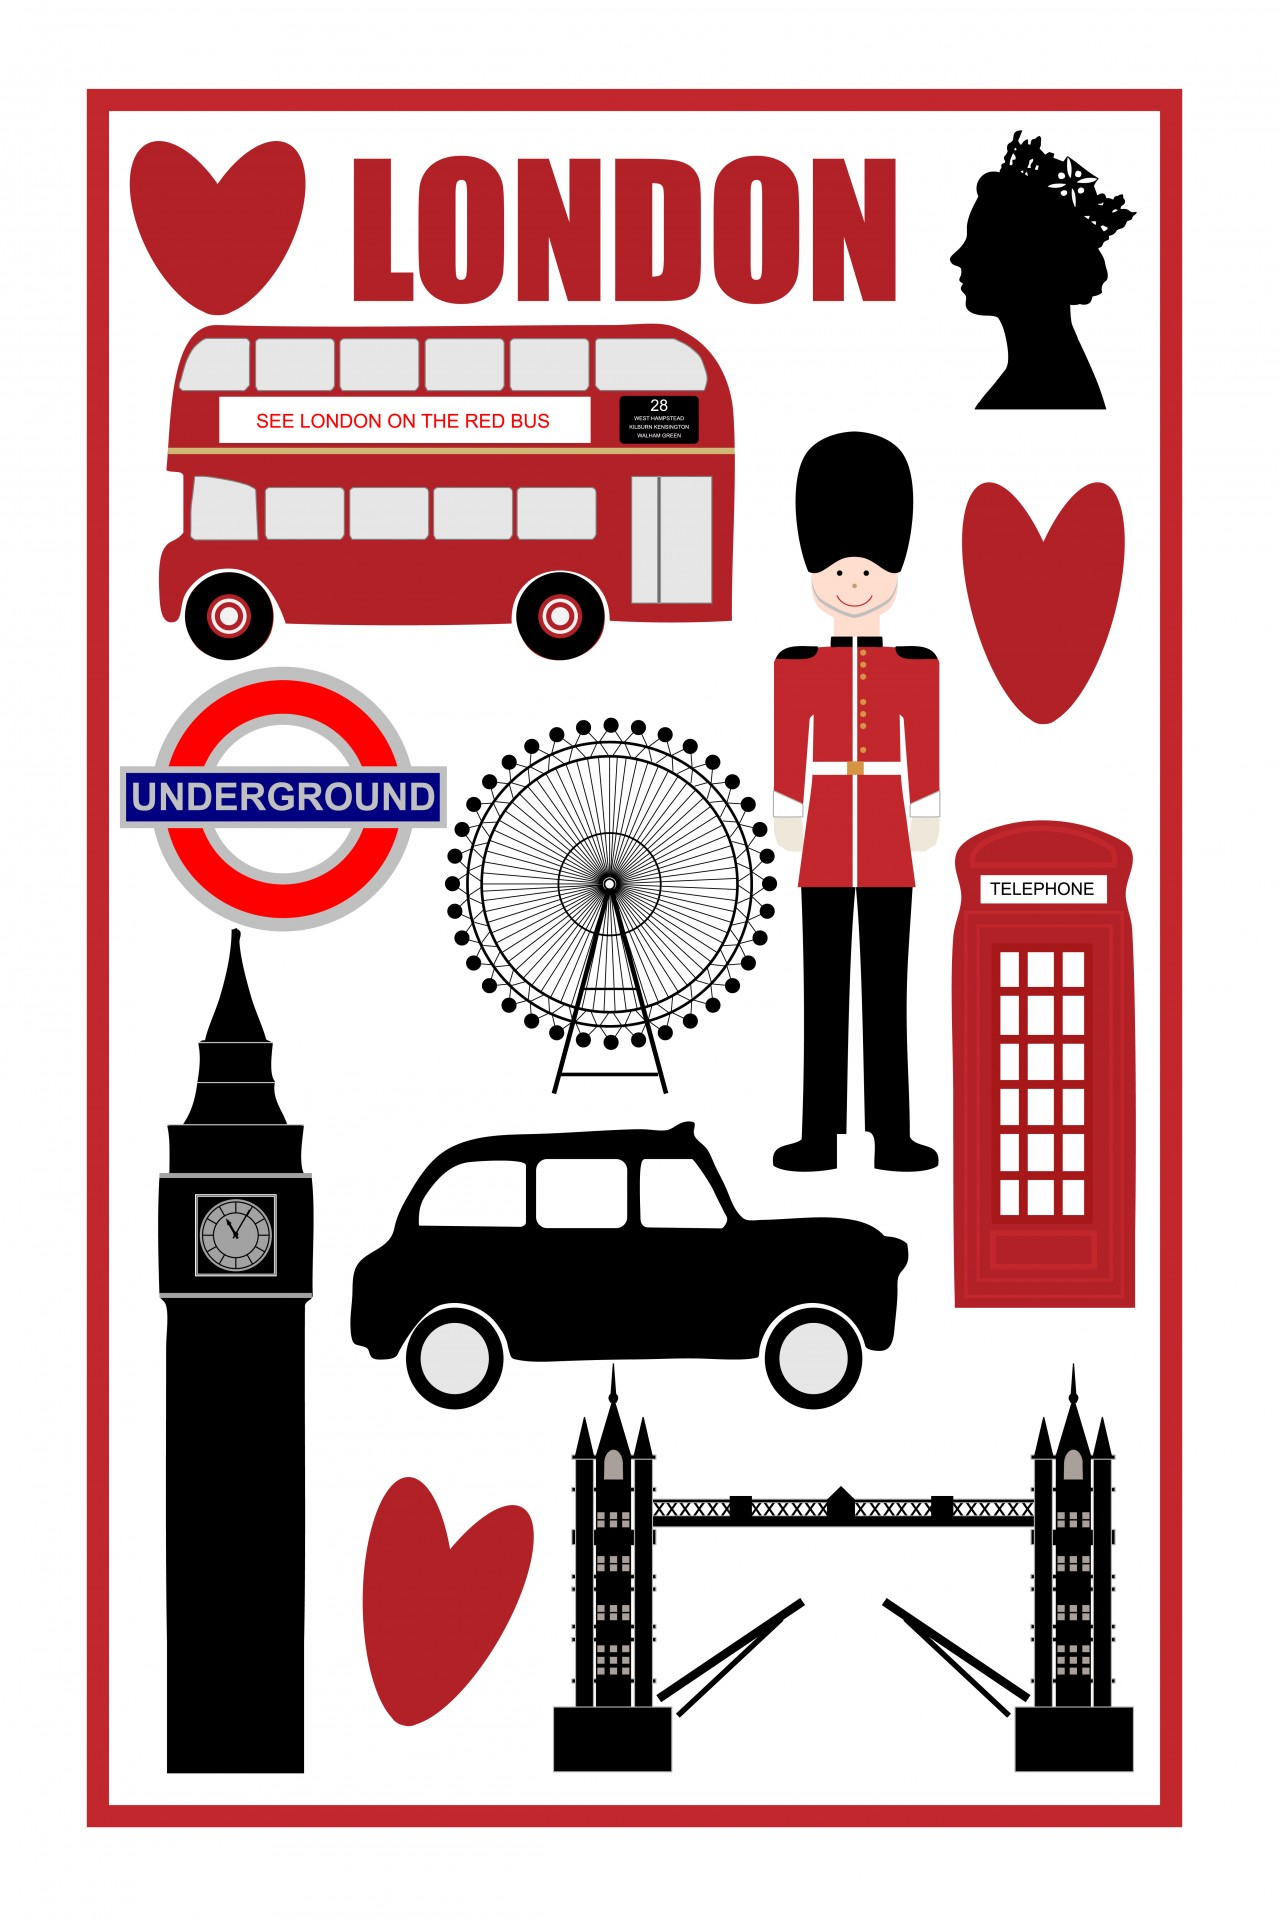 London clipart #16, Download drawings